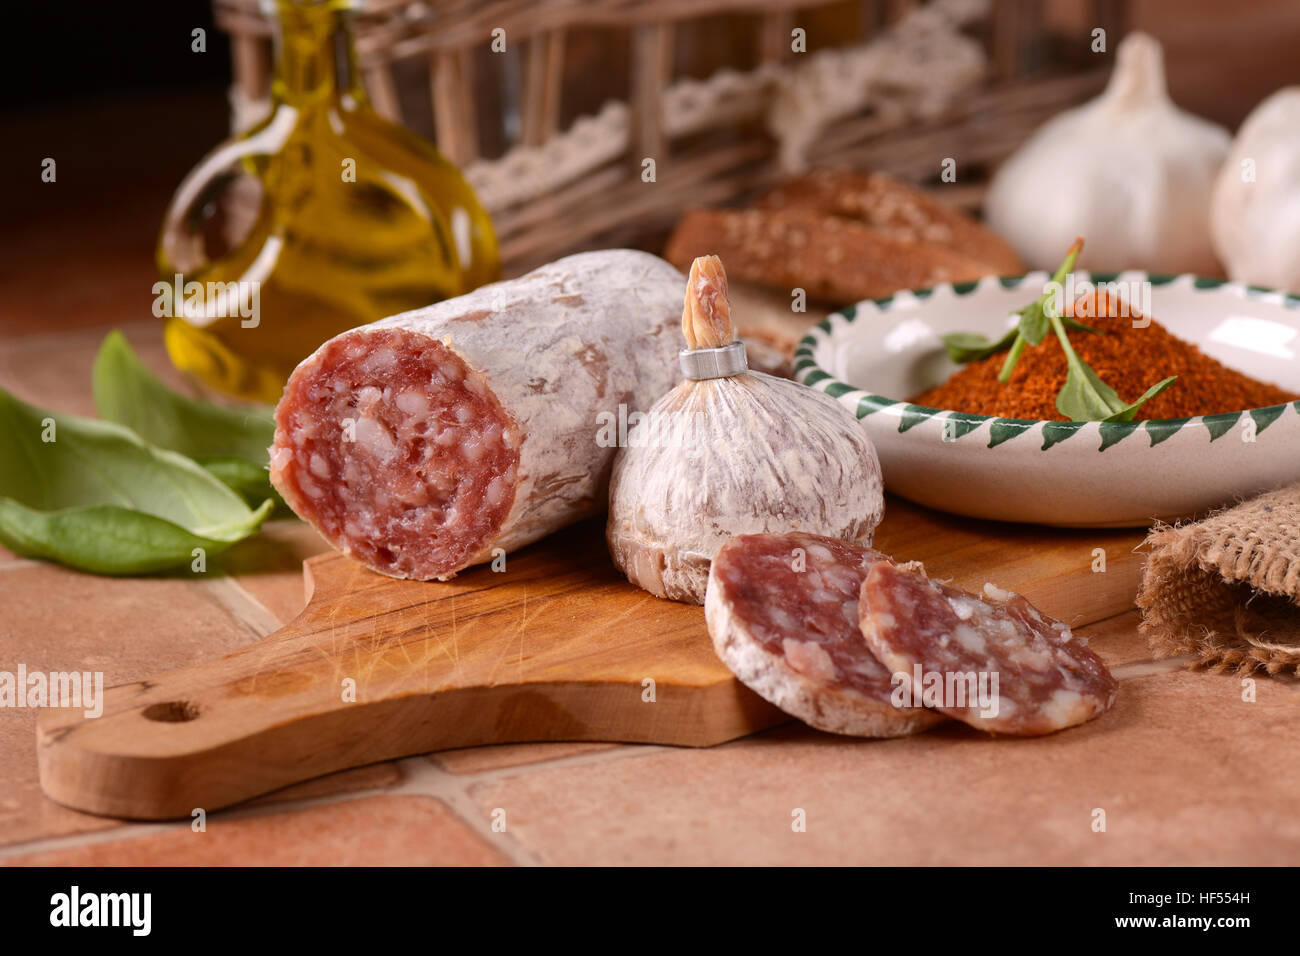 Salami pur porc au piment - Cuisine italienne traditionnelle Photo Stock